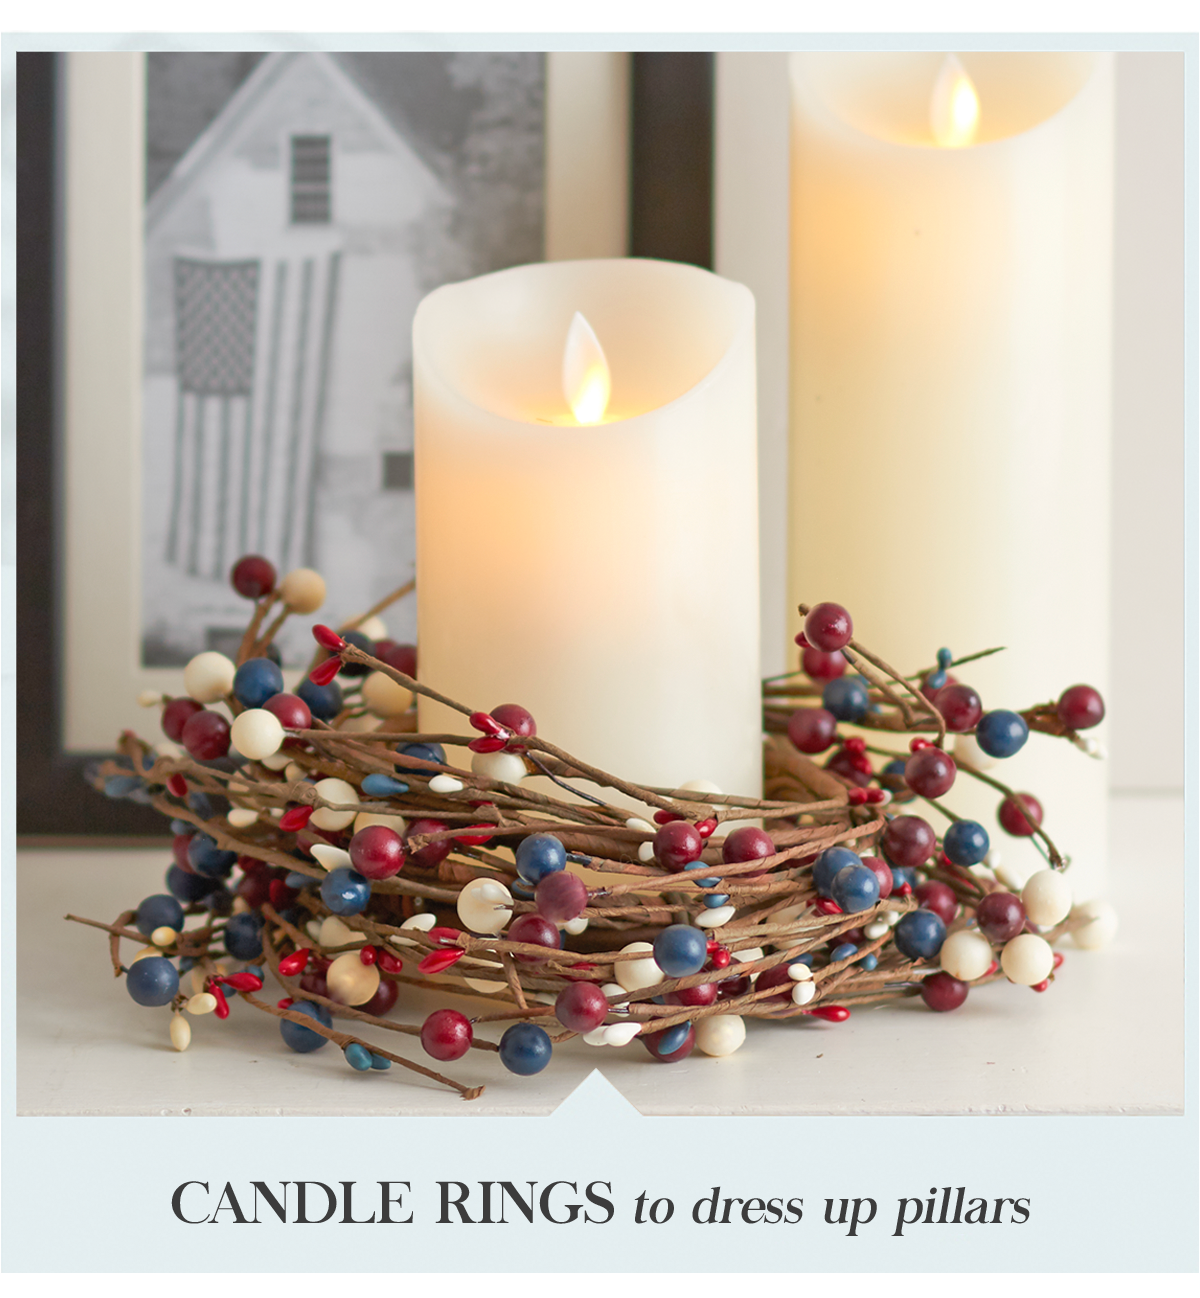 Candle Rings to dress up pillars